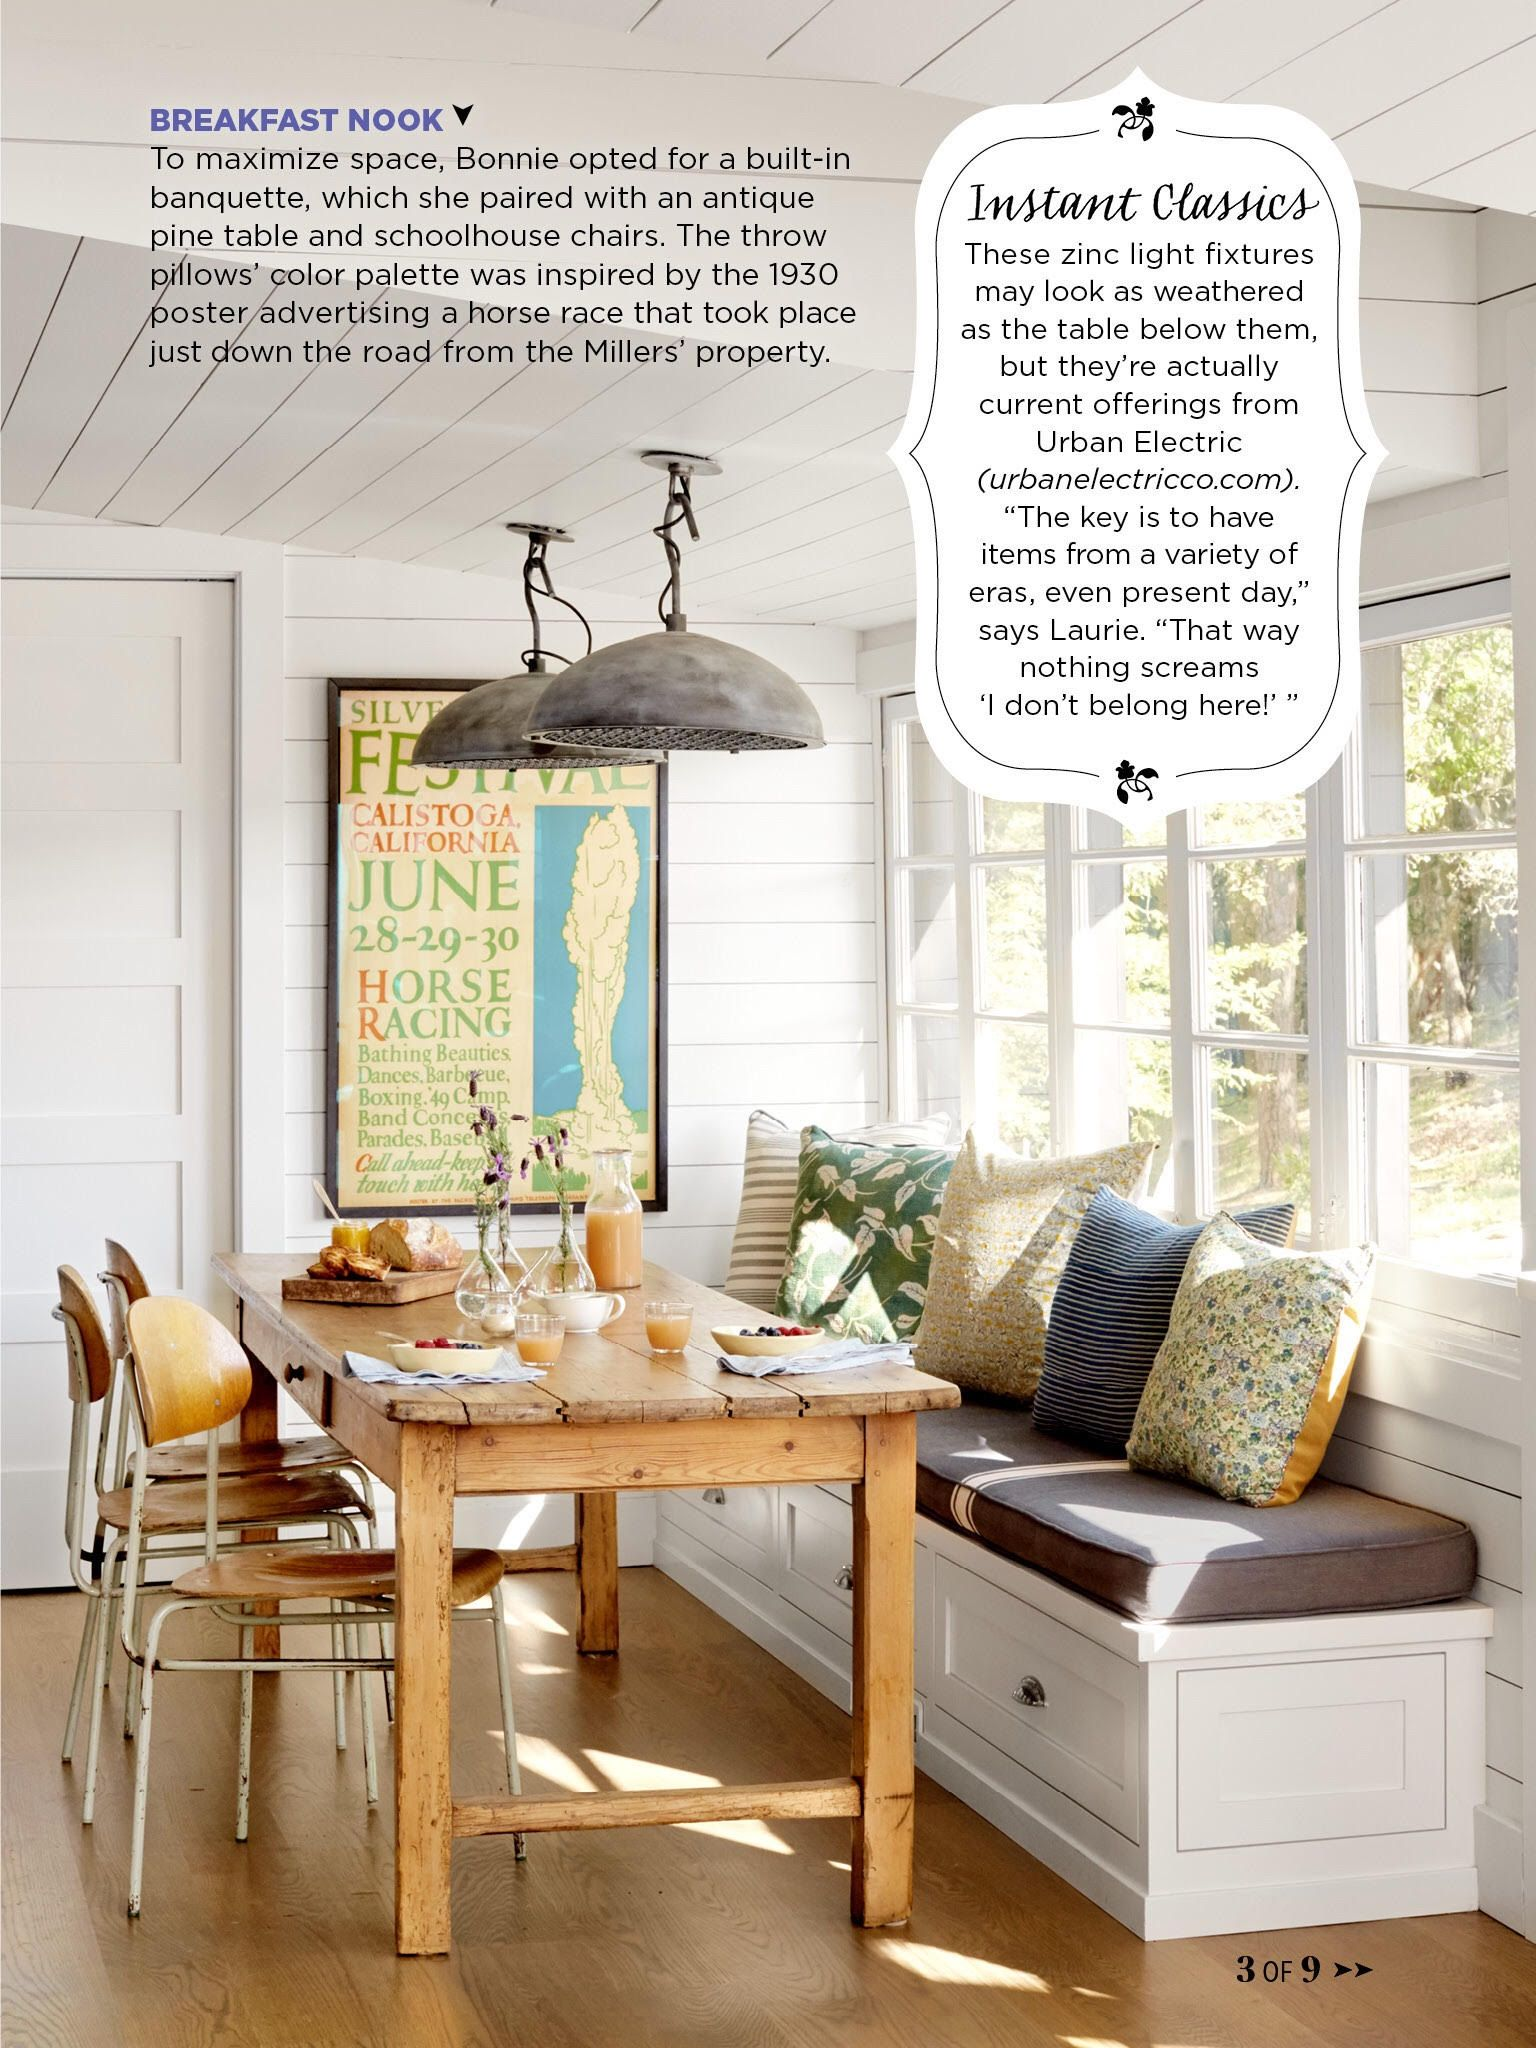 Breakfast Nook With Built In Bench Rustic Table Lighting Paneled Walls